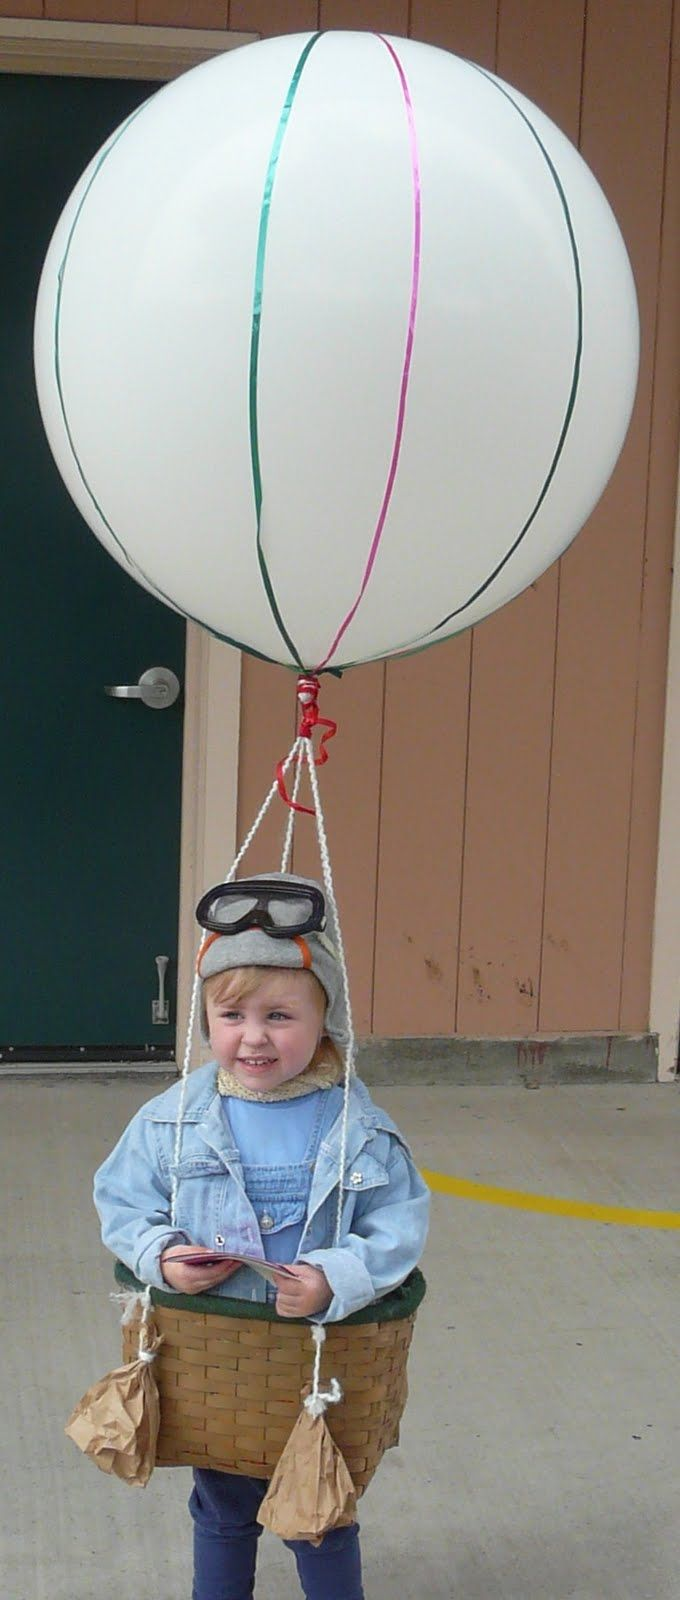 Halloween--Hot air balloon costume for kids.